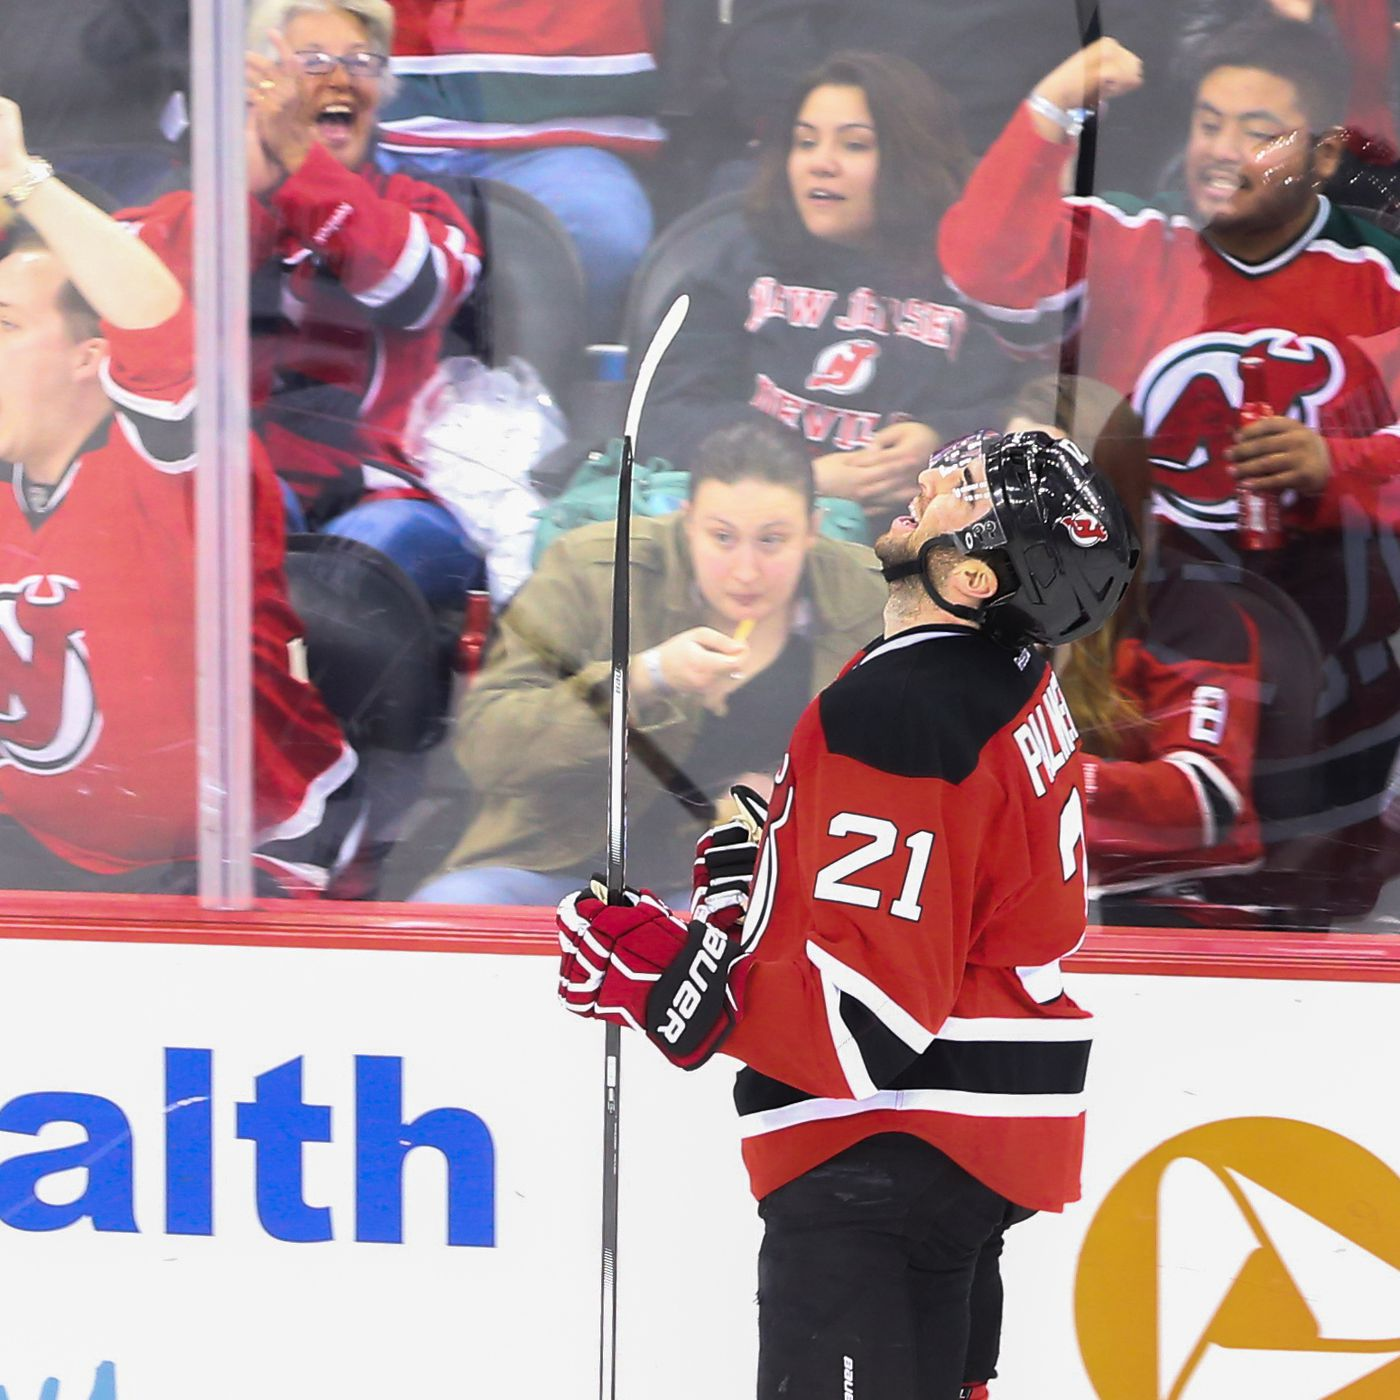 finest selection 86f6c 50248 Kyle Palmieri Re-Signs with New Jersey Devils for 5-year ...